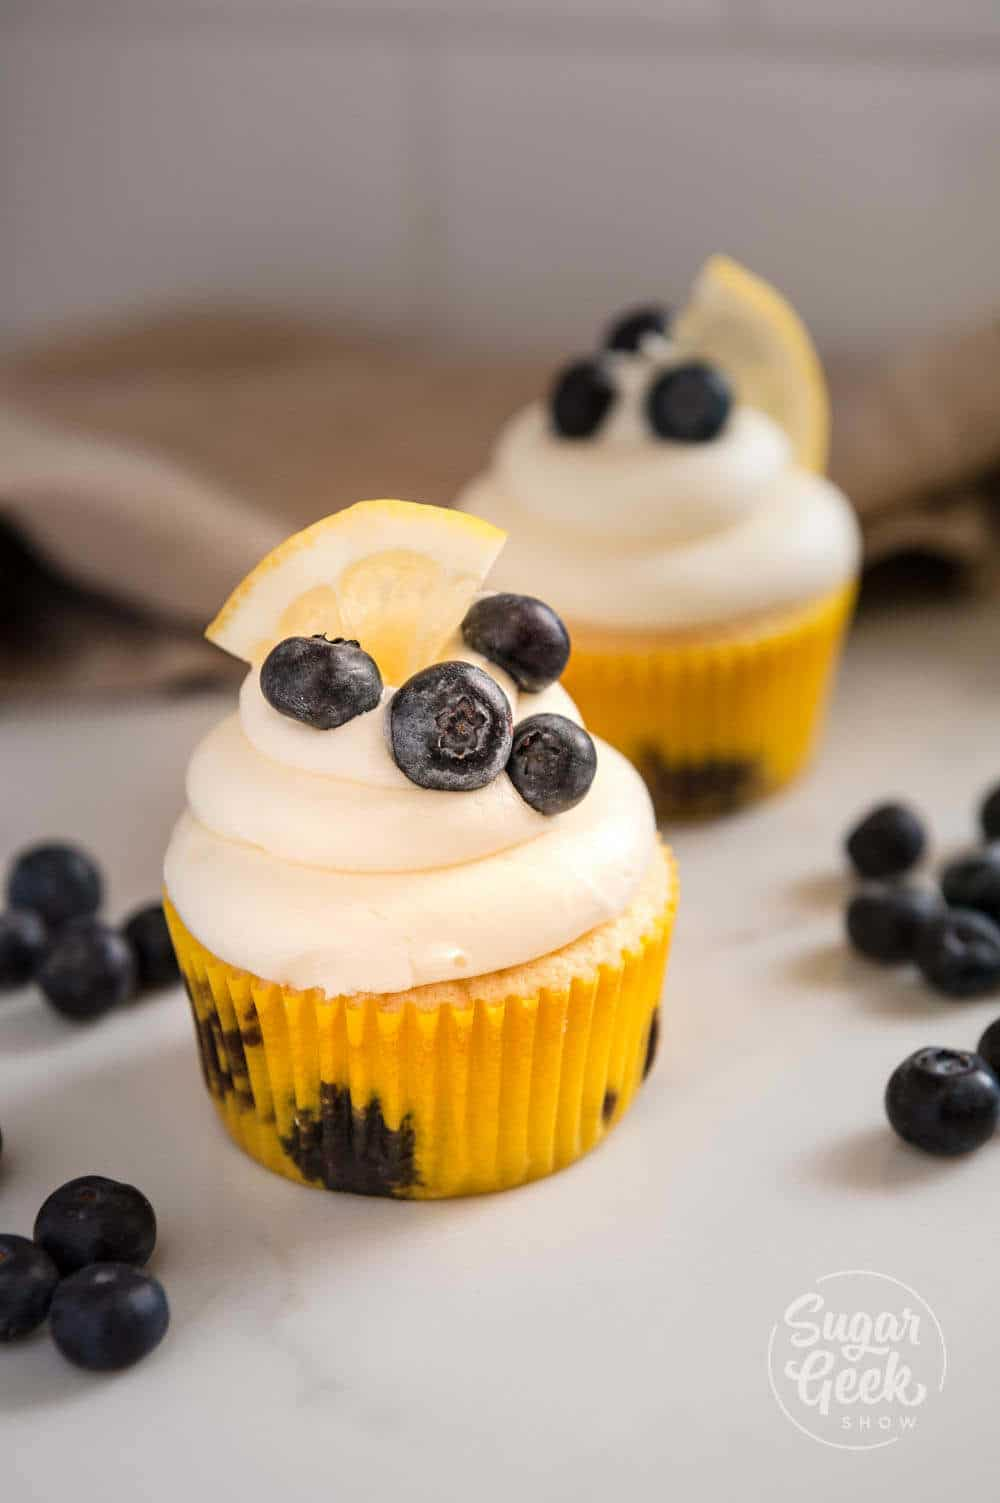 lemon blueberry cupcakes with cream cheese frosting and topped with fresh blueberries and a lemon slice